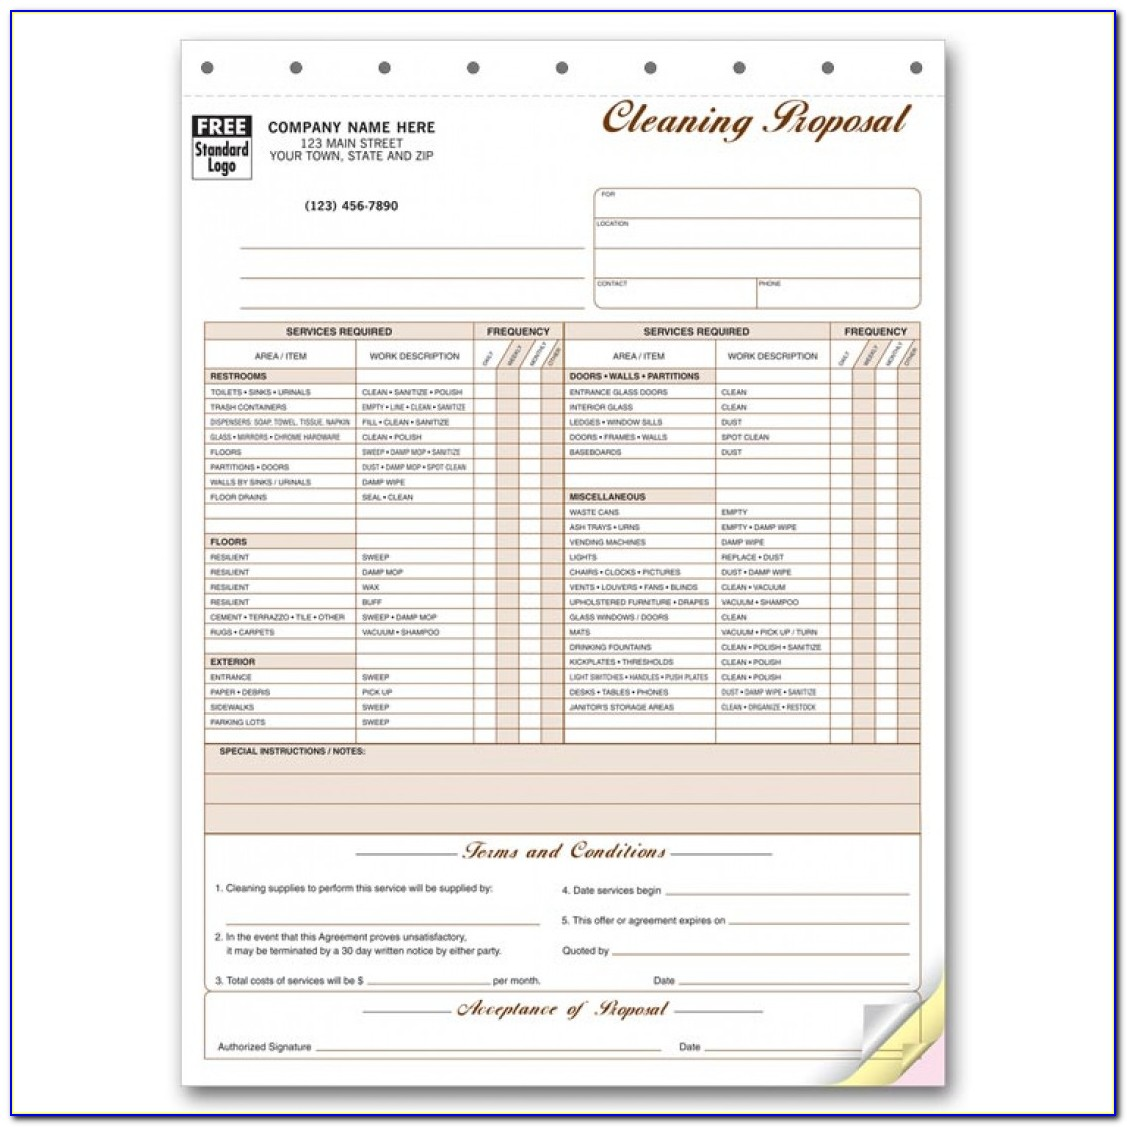 Free Commercial Cleaning Proposal Forms